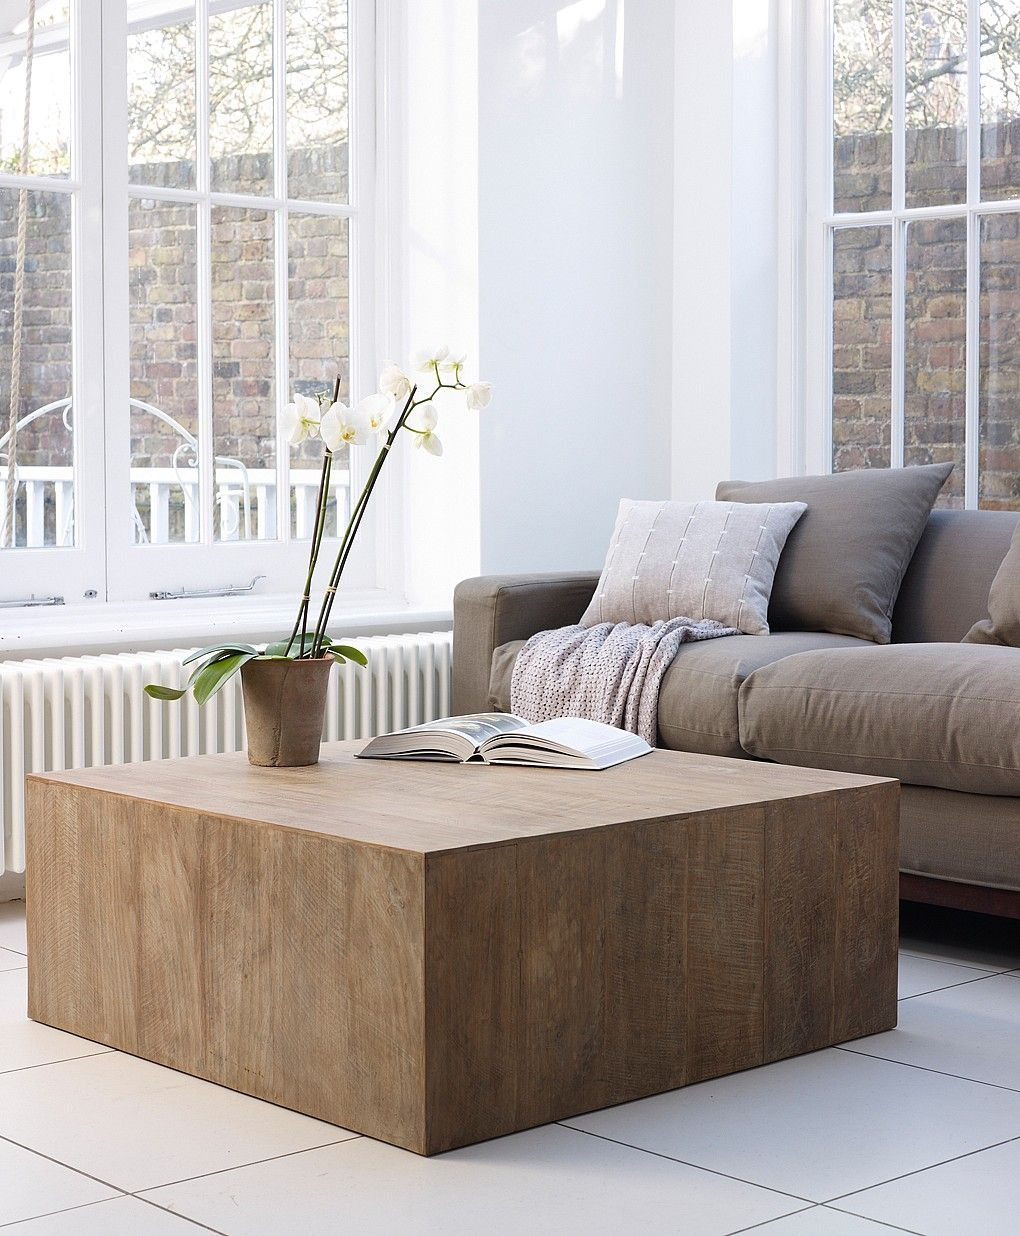 Manado Square Wooden Coffee Tables From Lombok Coffee Table Living Room Coffee Table Coffee Table Plans